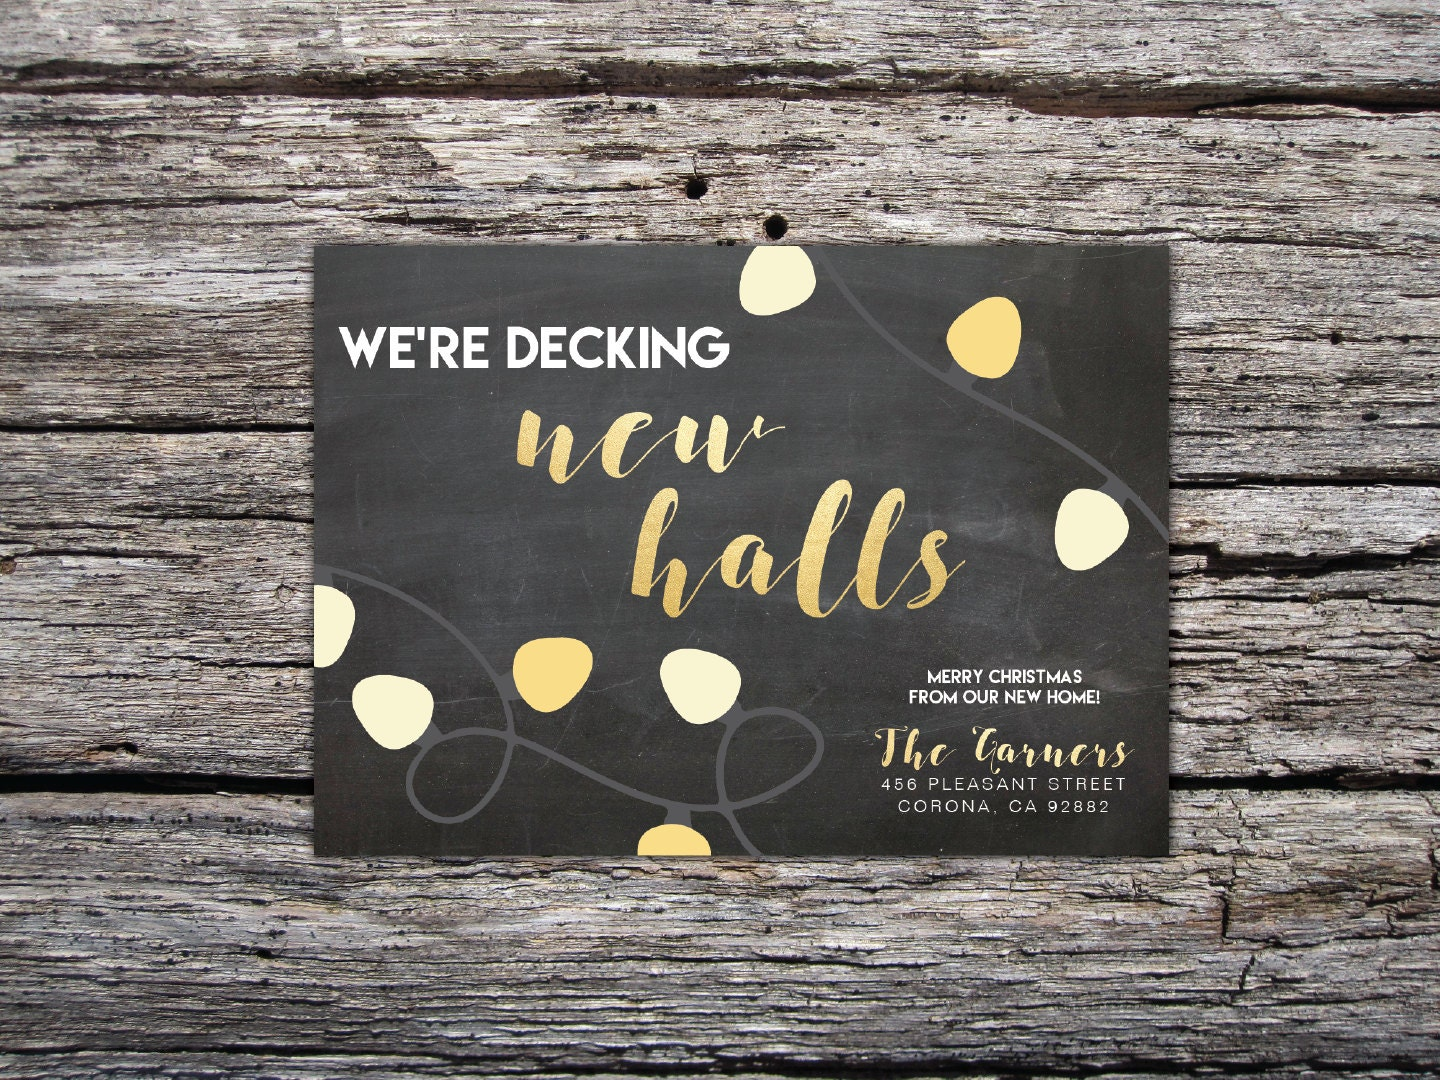 decking new halls christmas card christmas moving announcement we